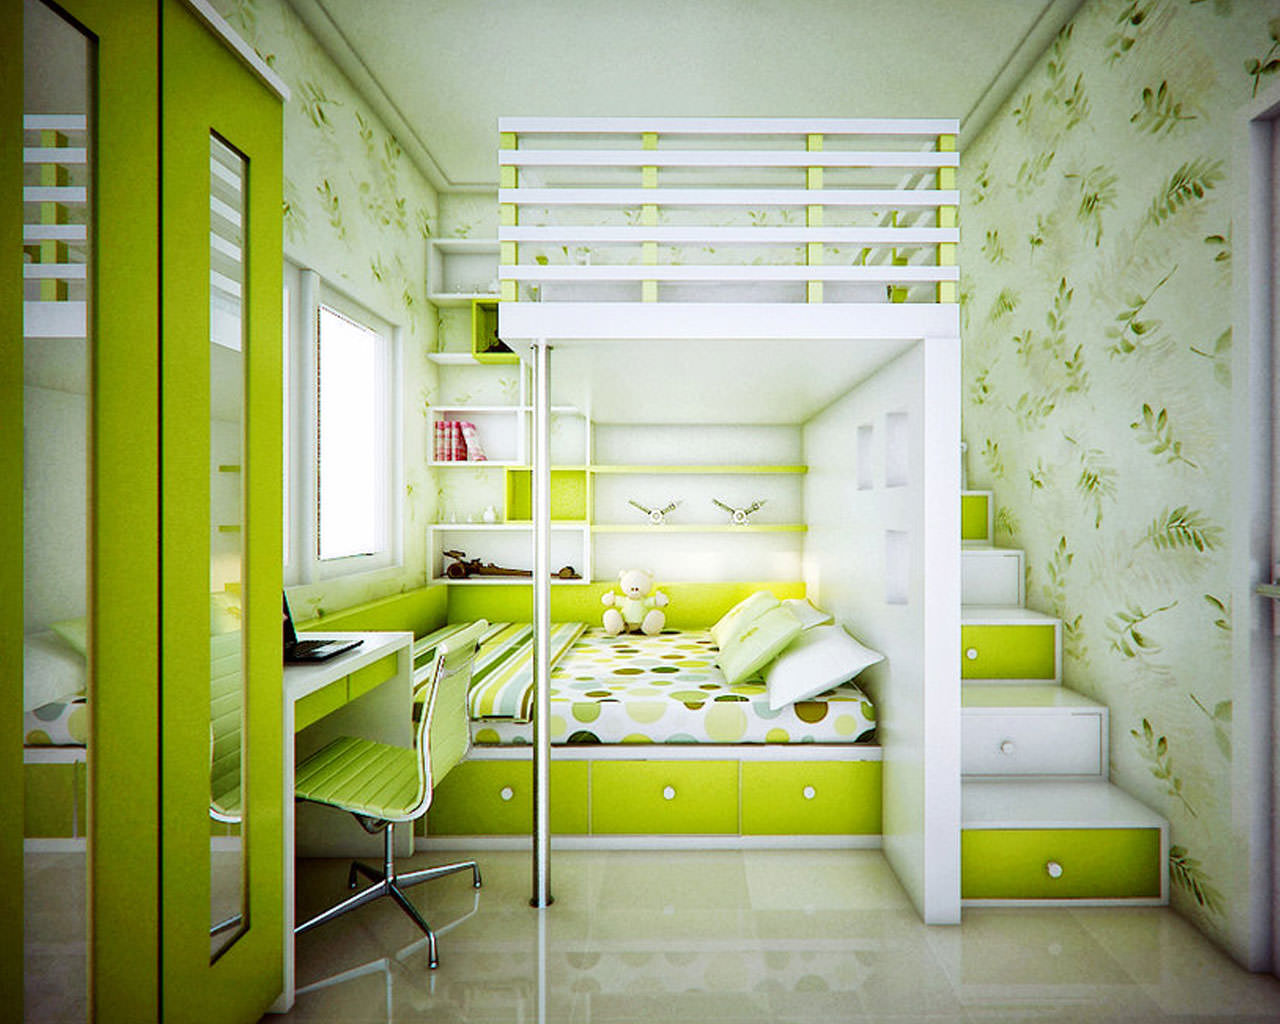 Green room interior design home designs design trends - Green interior design ...